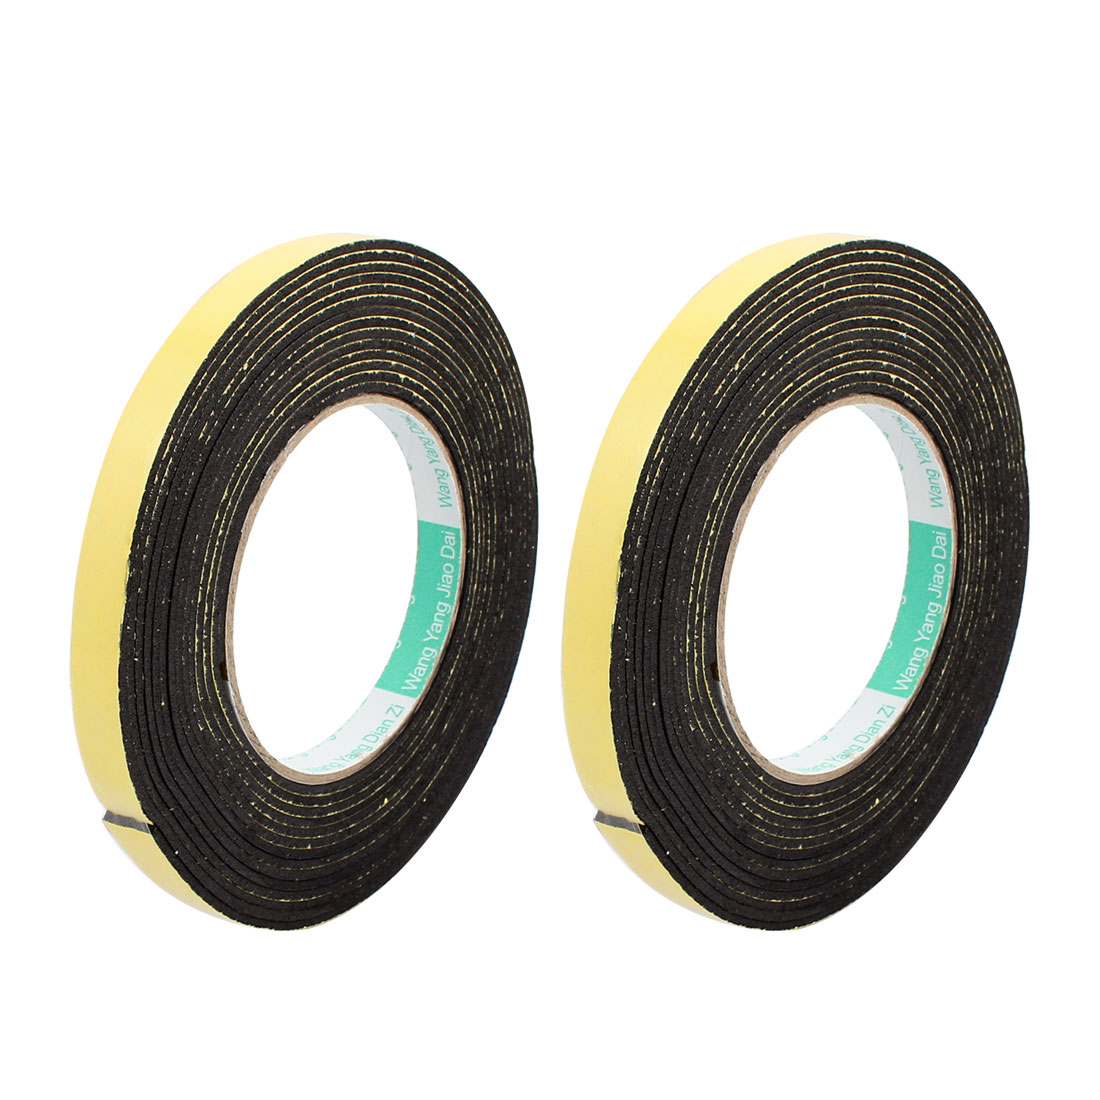 2Pcs 12mm Width 2mm Thick Single Sided Sealing Shockproof Sponge Tape 5m Length